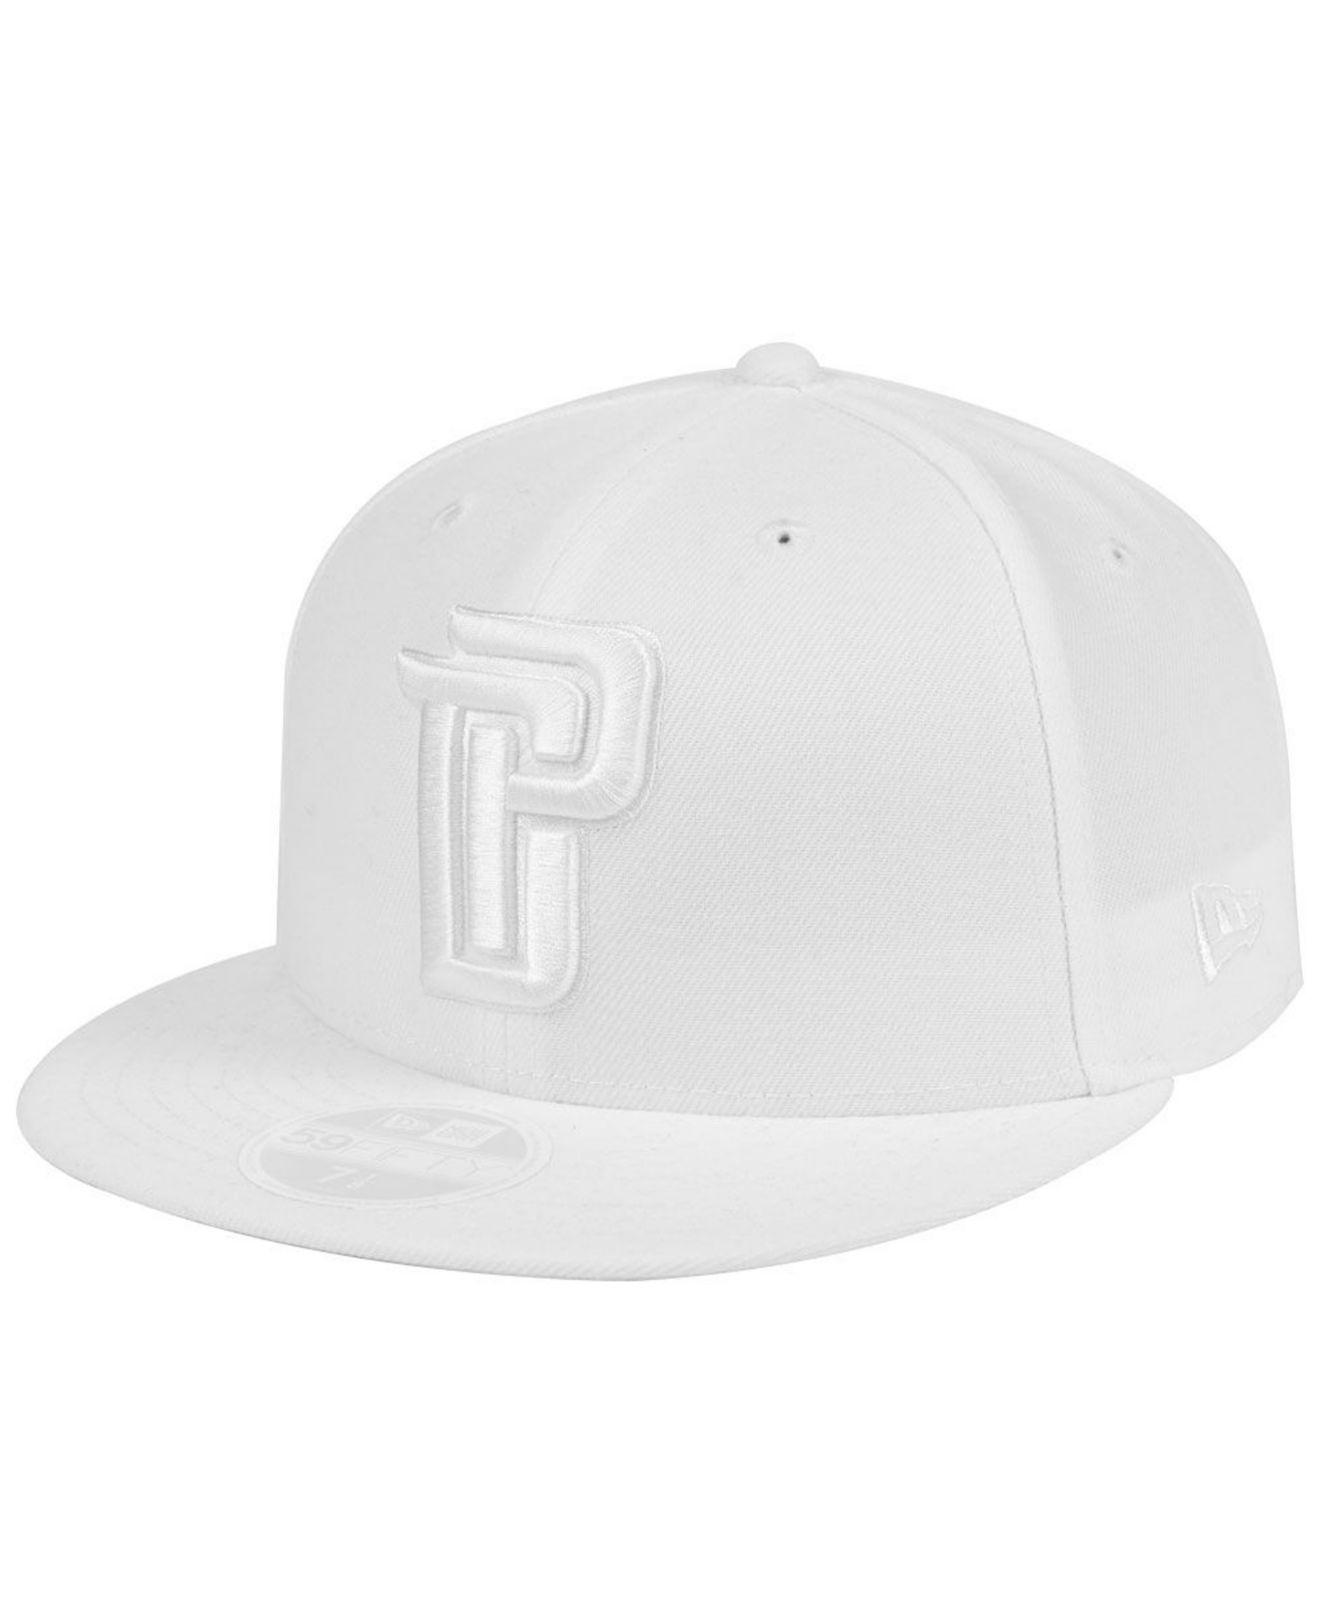 new styles 1d26f b20eb ... france ktz detroit pistons whiteout 59fifty fitted cap for men lyst.  view fullscreen 715a8 22c65